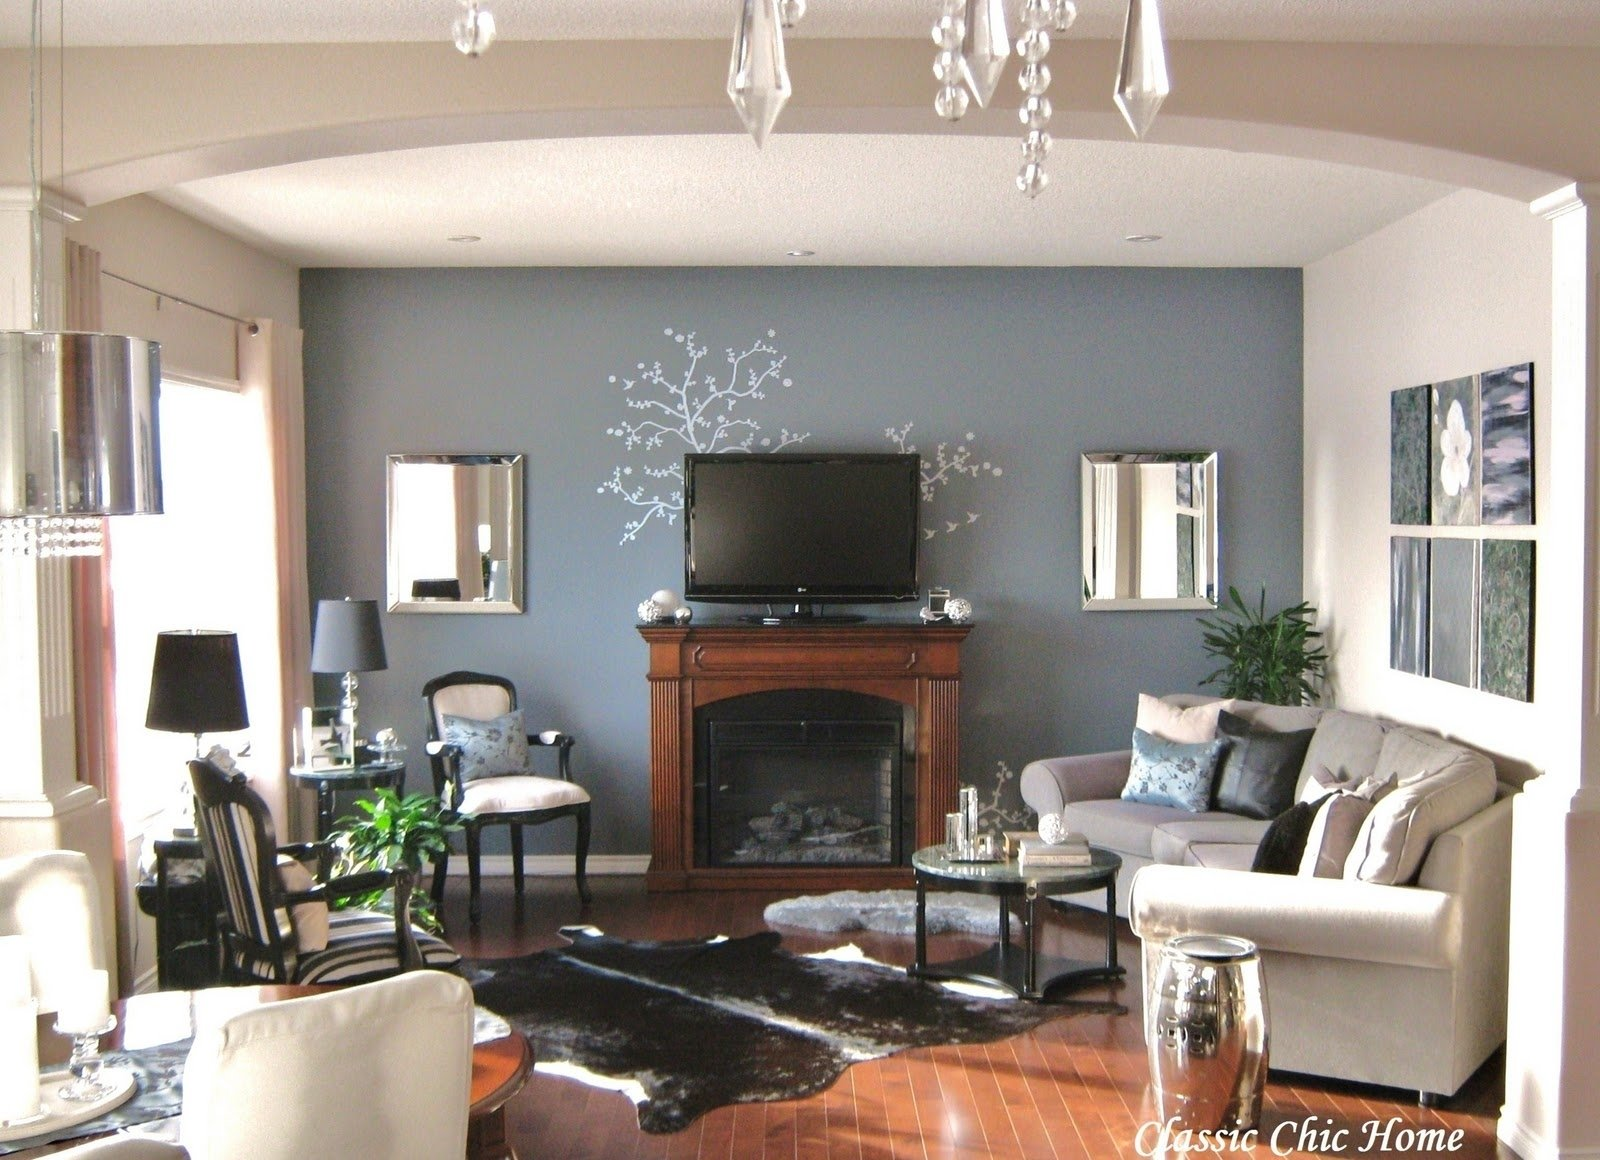 10 Elegant Living Room Ideas With Fireplace living room with fireplace design ideas fireplace design ideas 3 2021